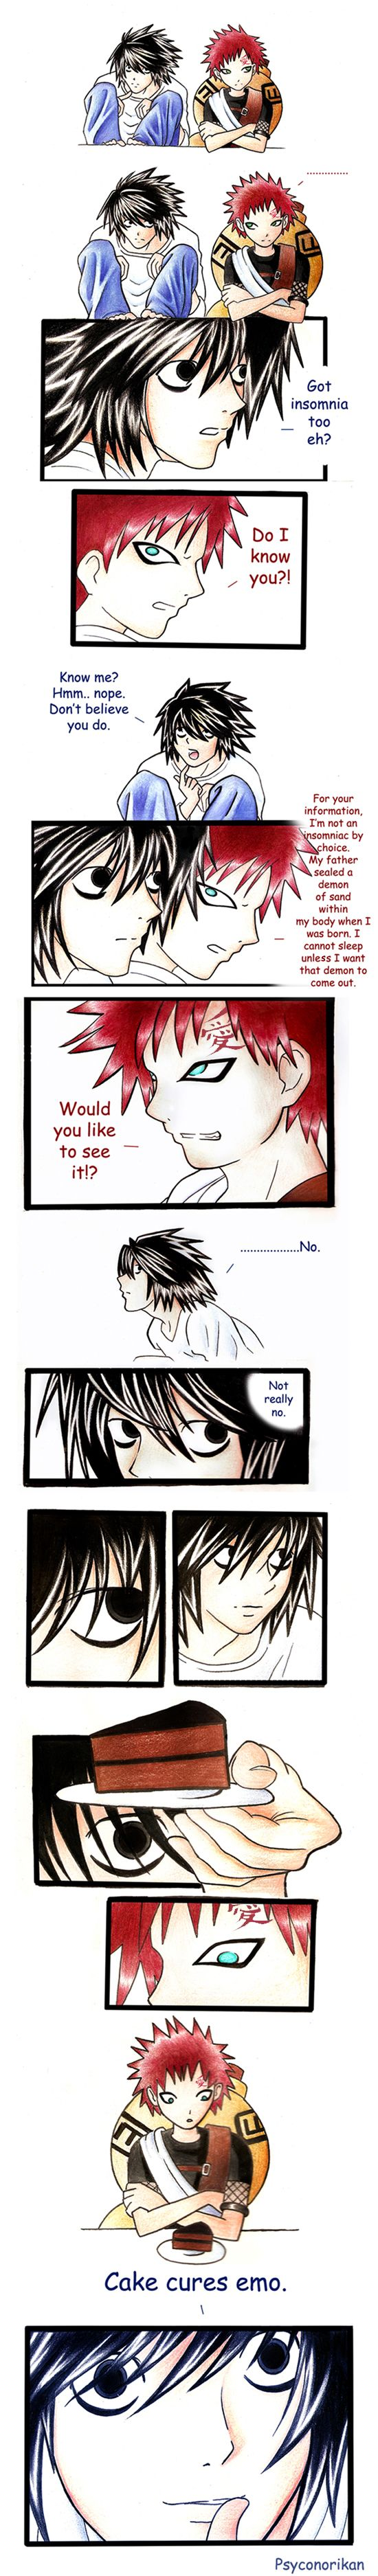 L's Cure For Emo by =Psyconorikan on deviantART